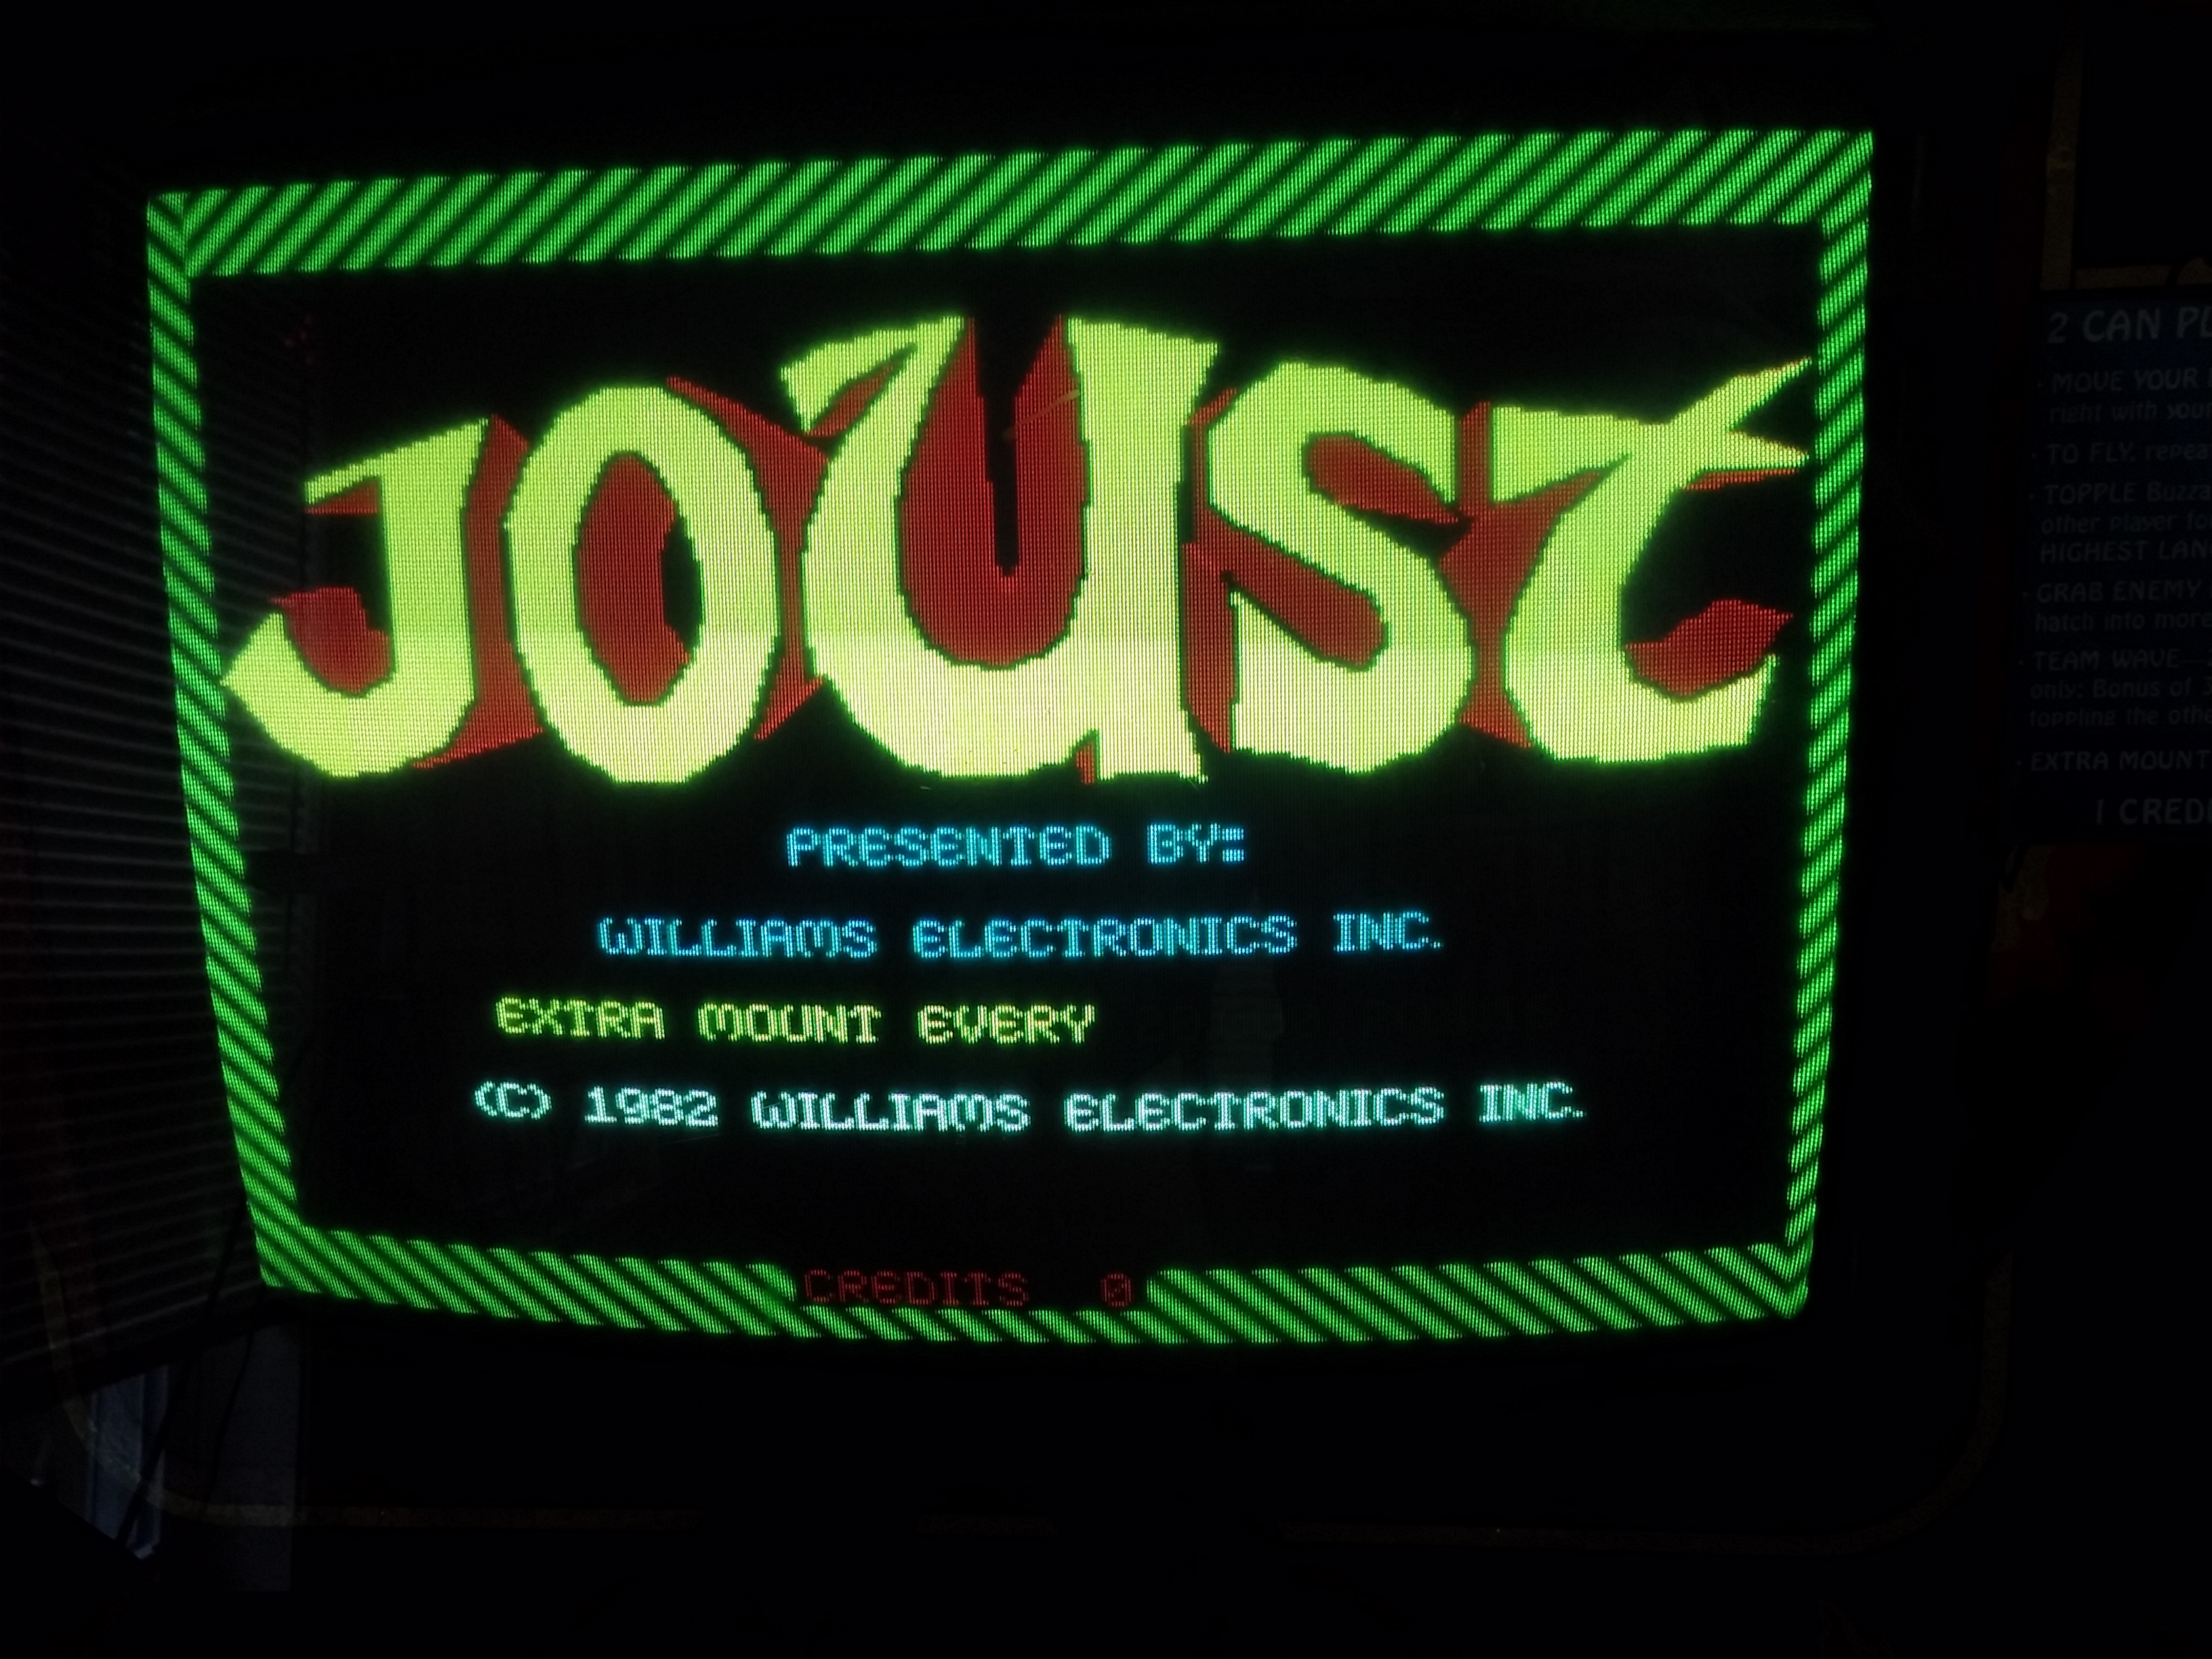 Bringing Joust Back to Life